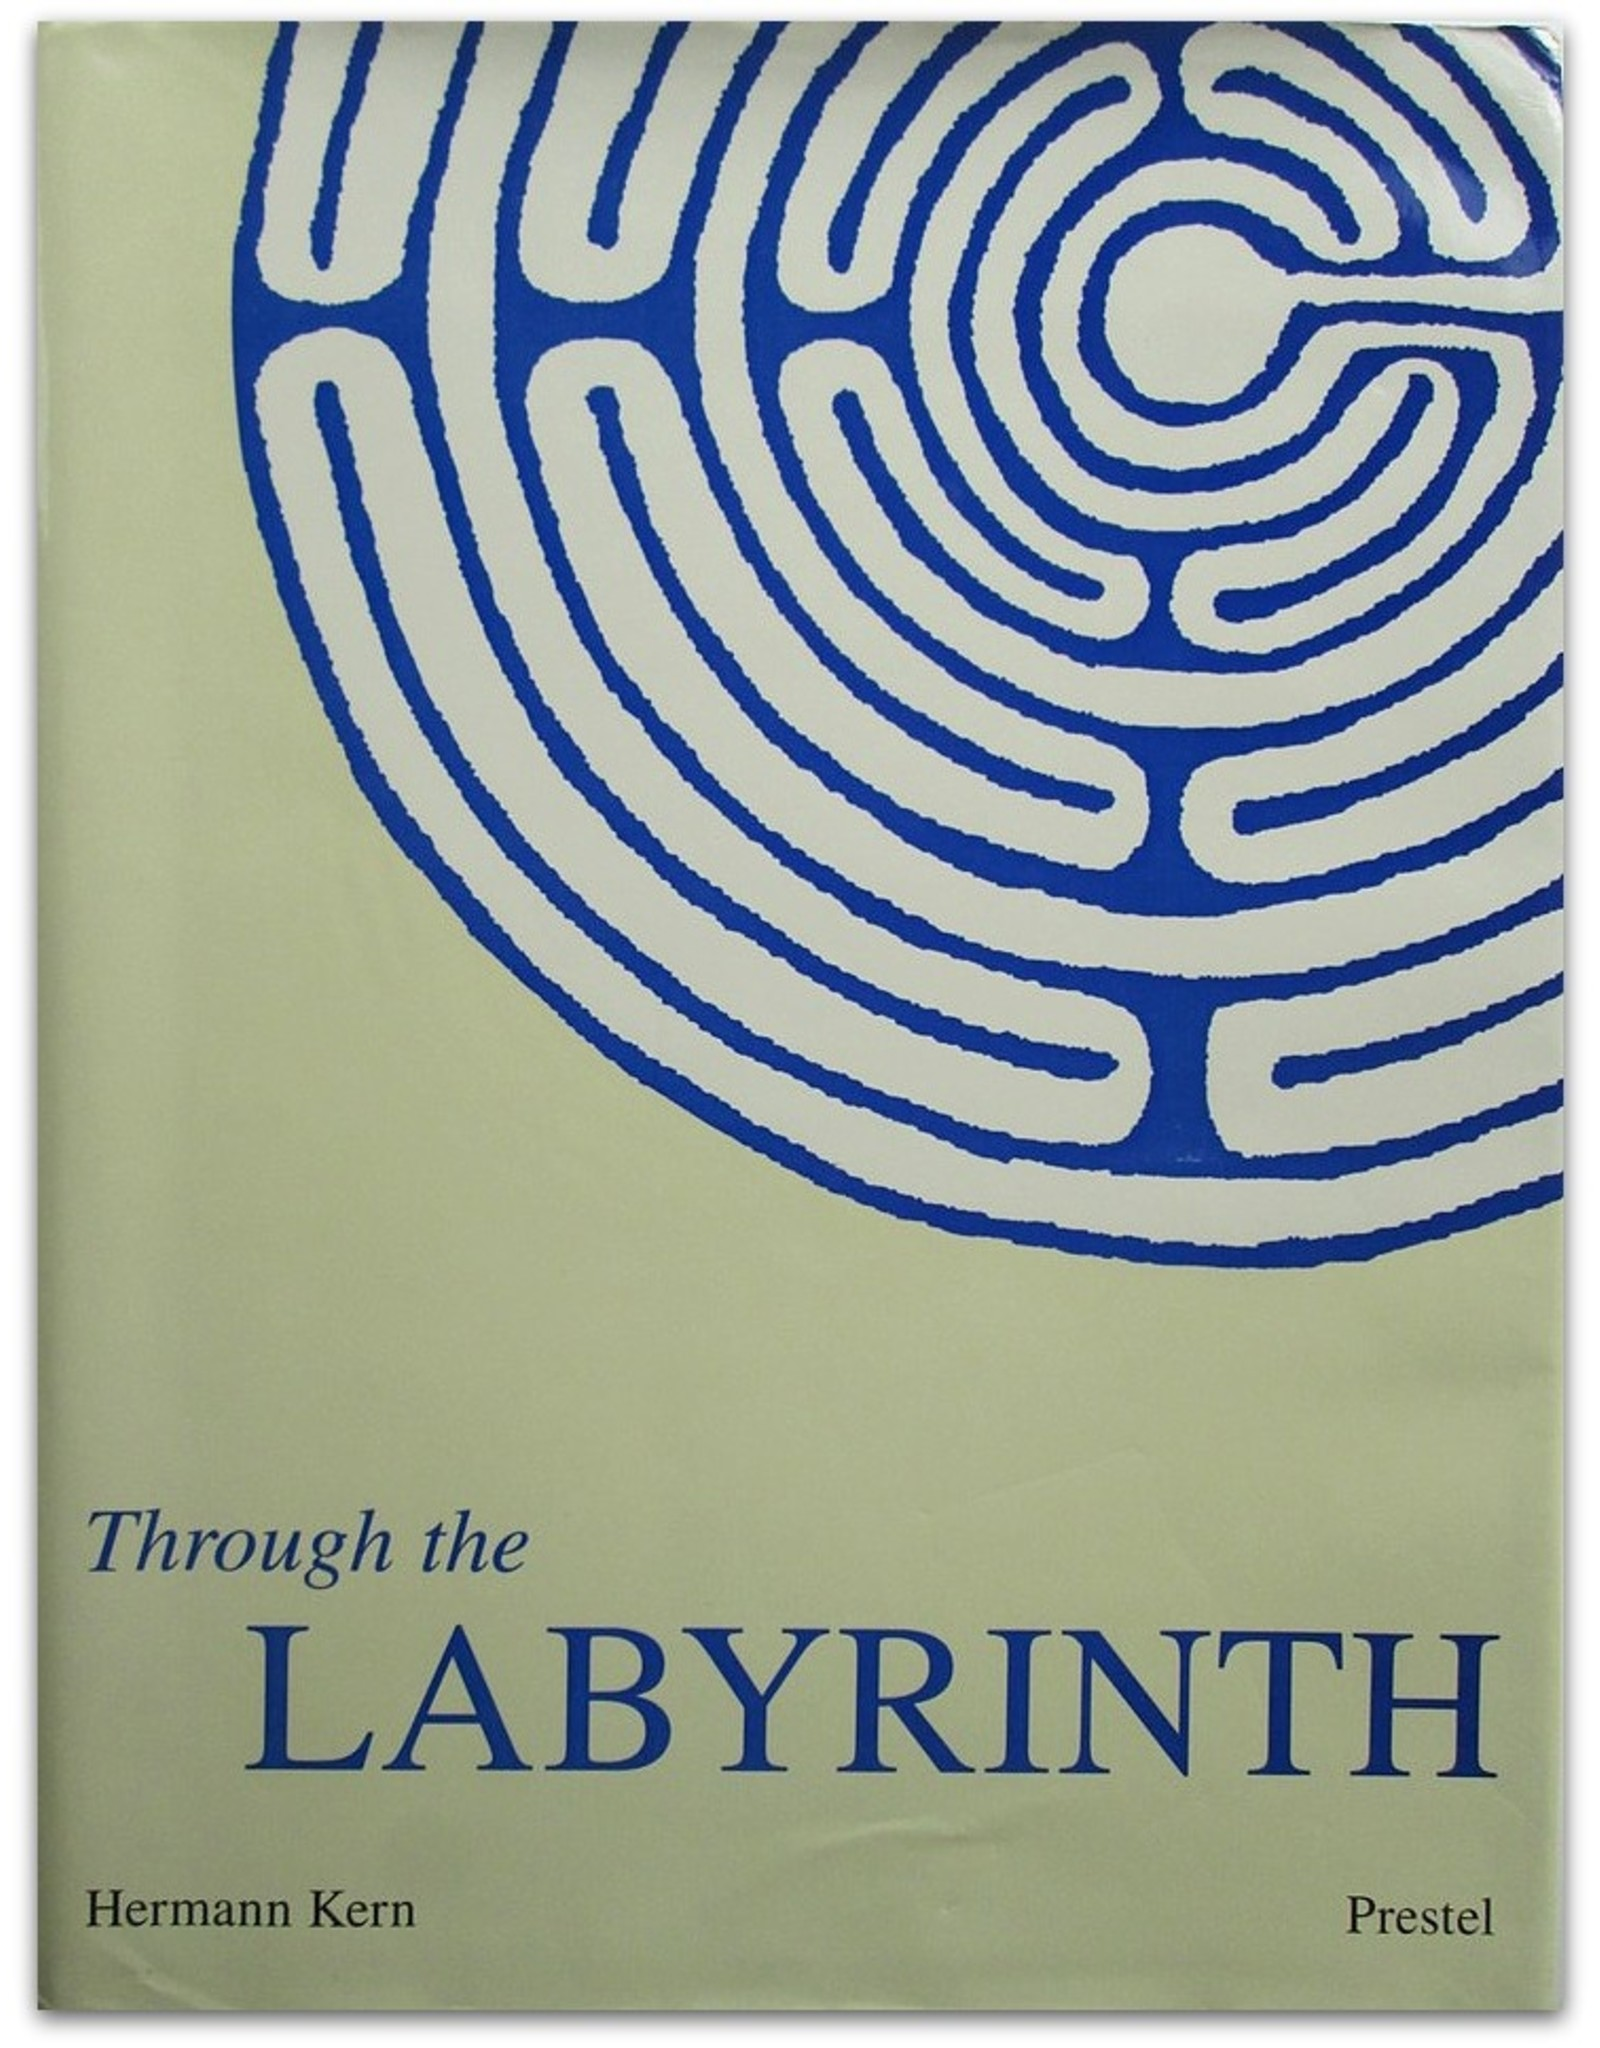 Hermann Kern - Through the Labyrinth: Designs and Meanings over 5,000 Years